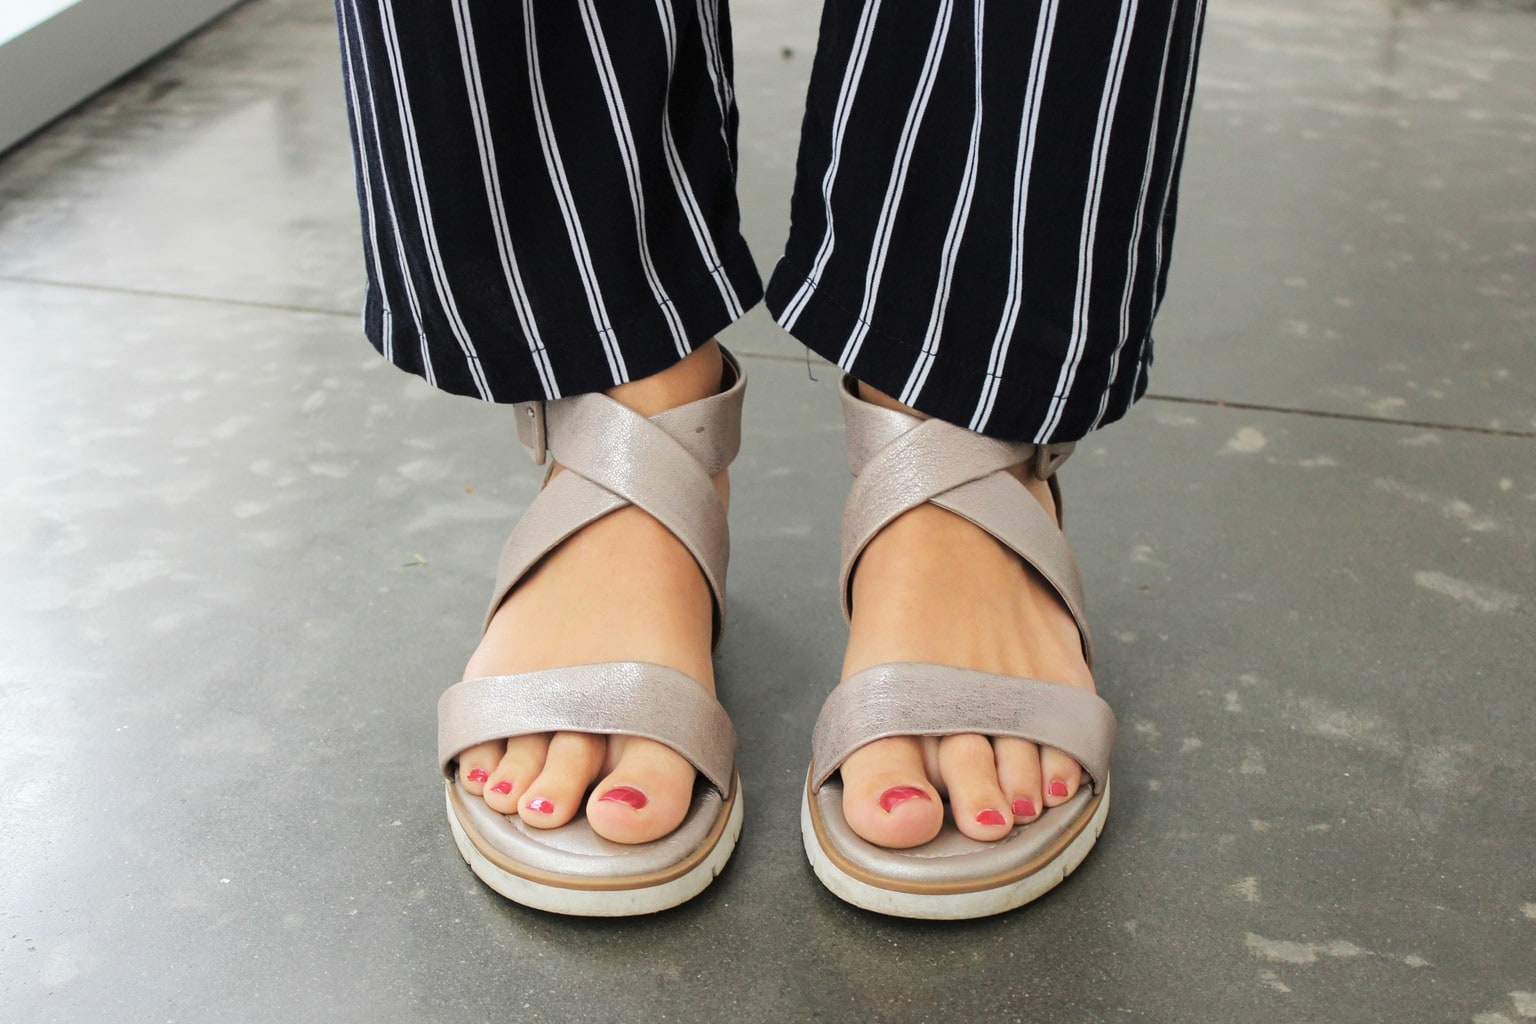 Strappy silver sandals finish off Maya's look.